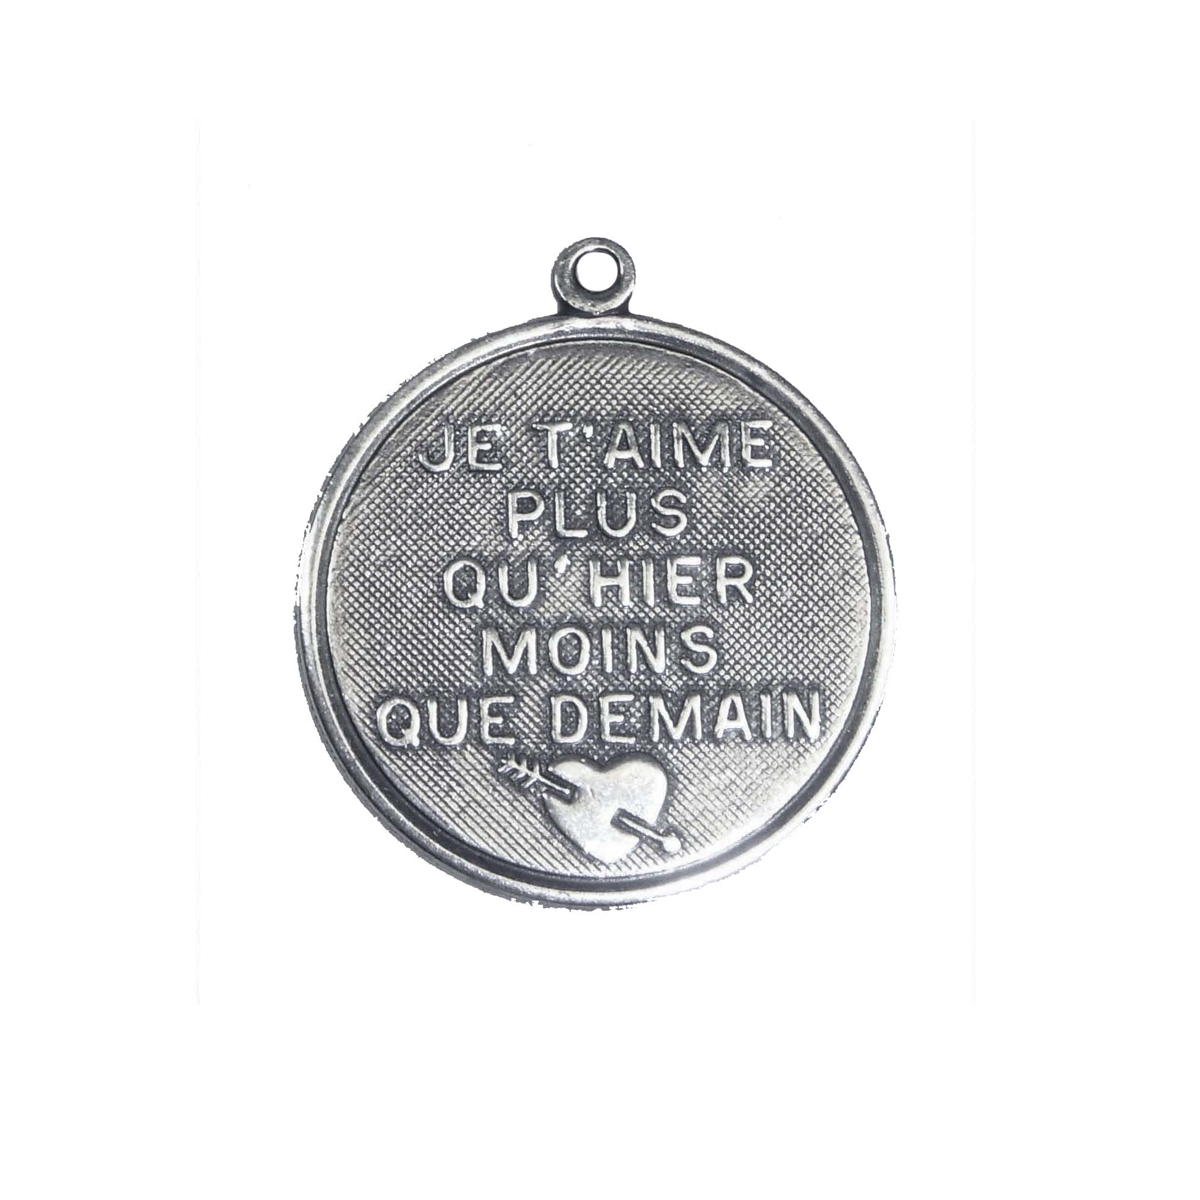 French charms je taime silverware antique silver brass charms french charms je taime silverware antique silver brass charms vintage jewelry supplies jewelry making supplies aloadofball Choice Image